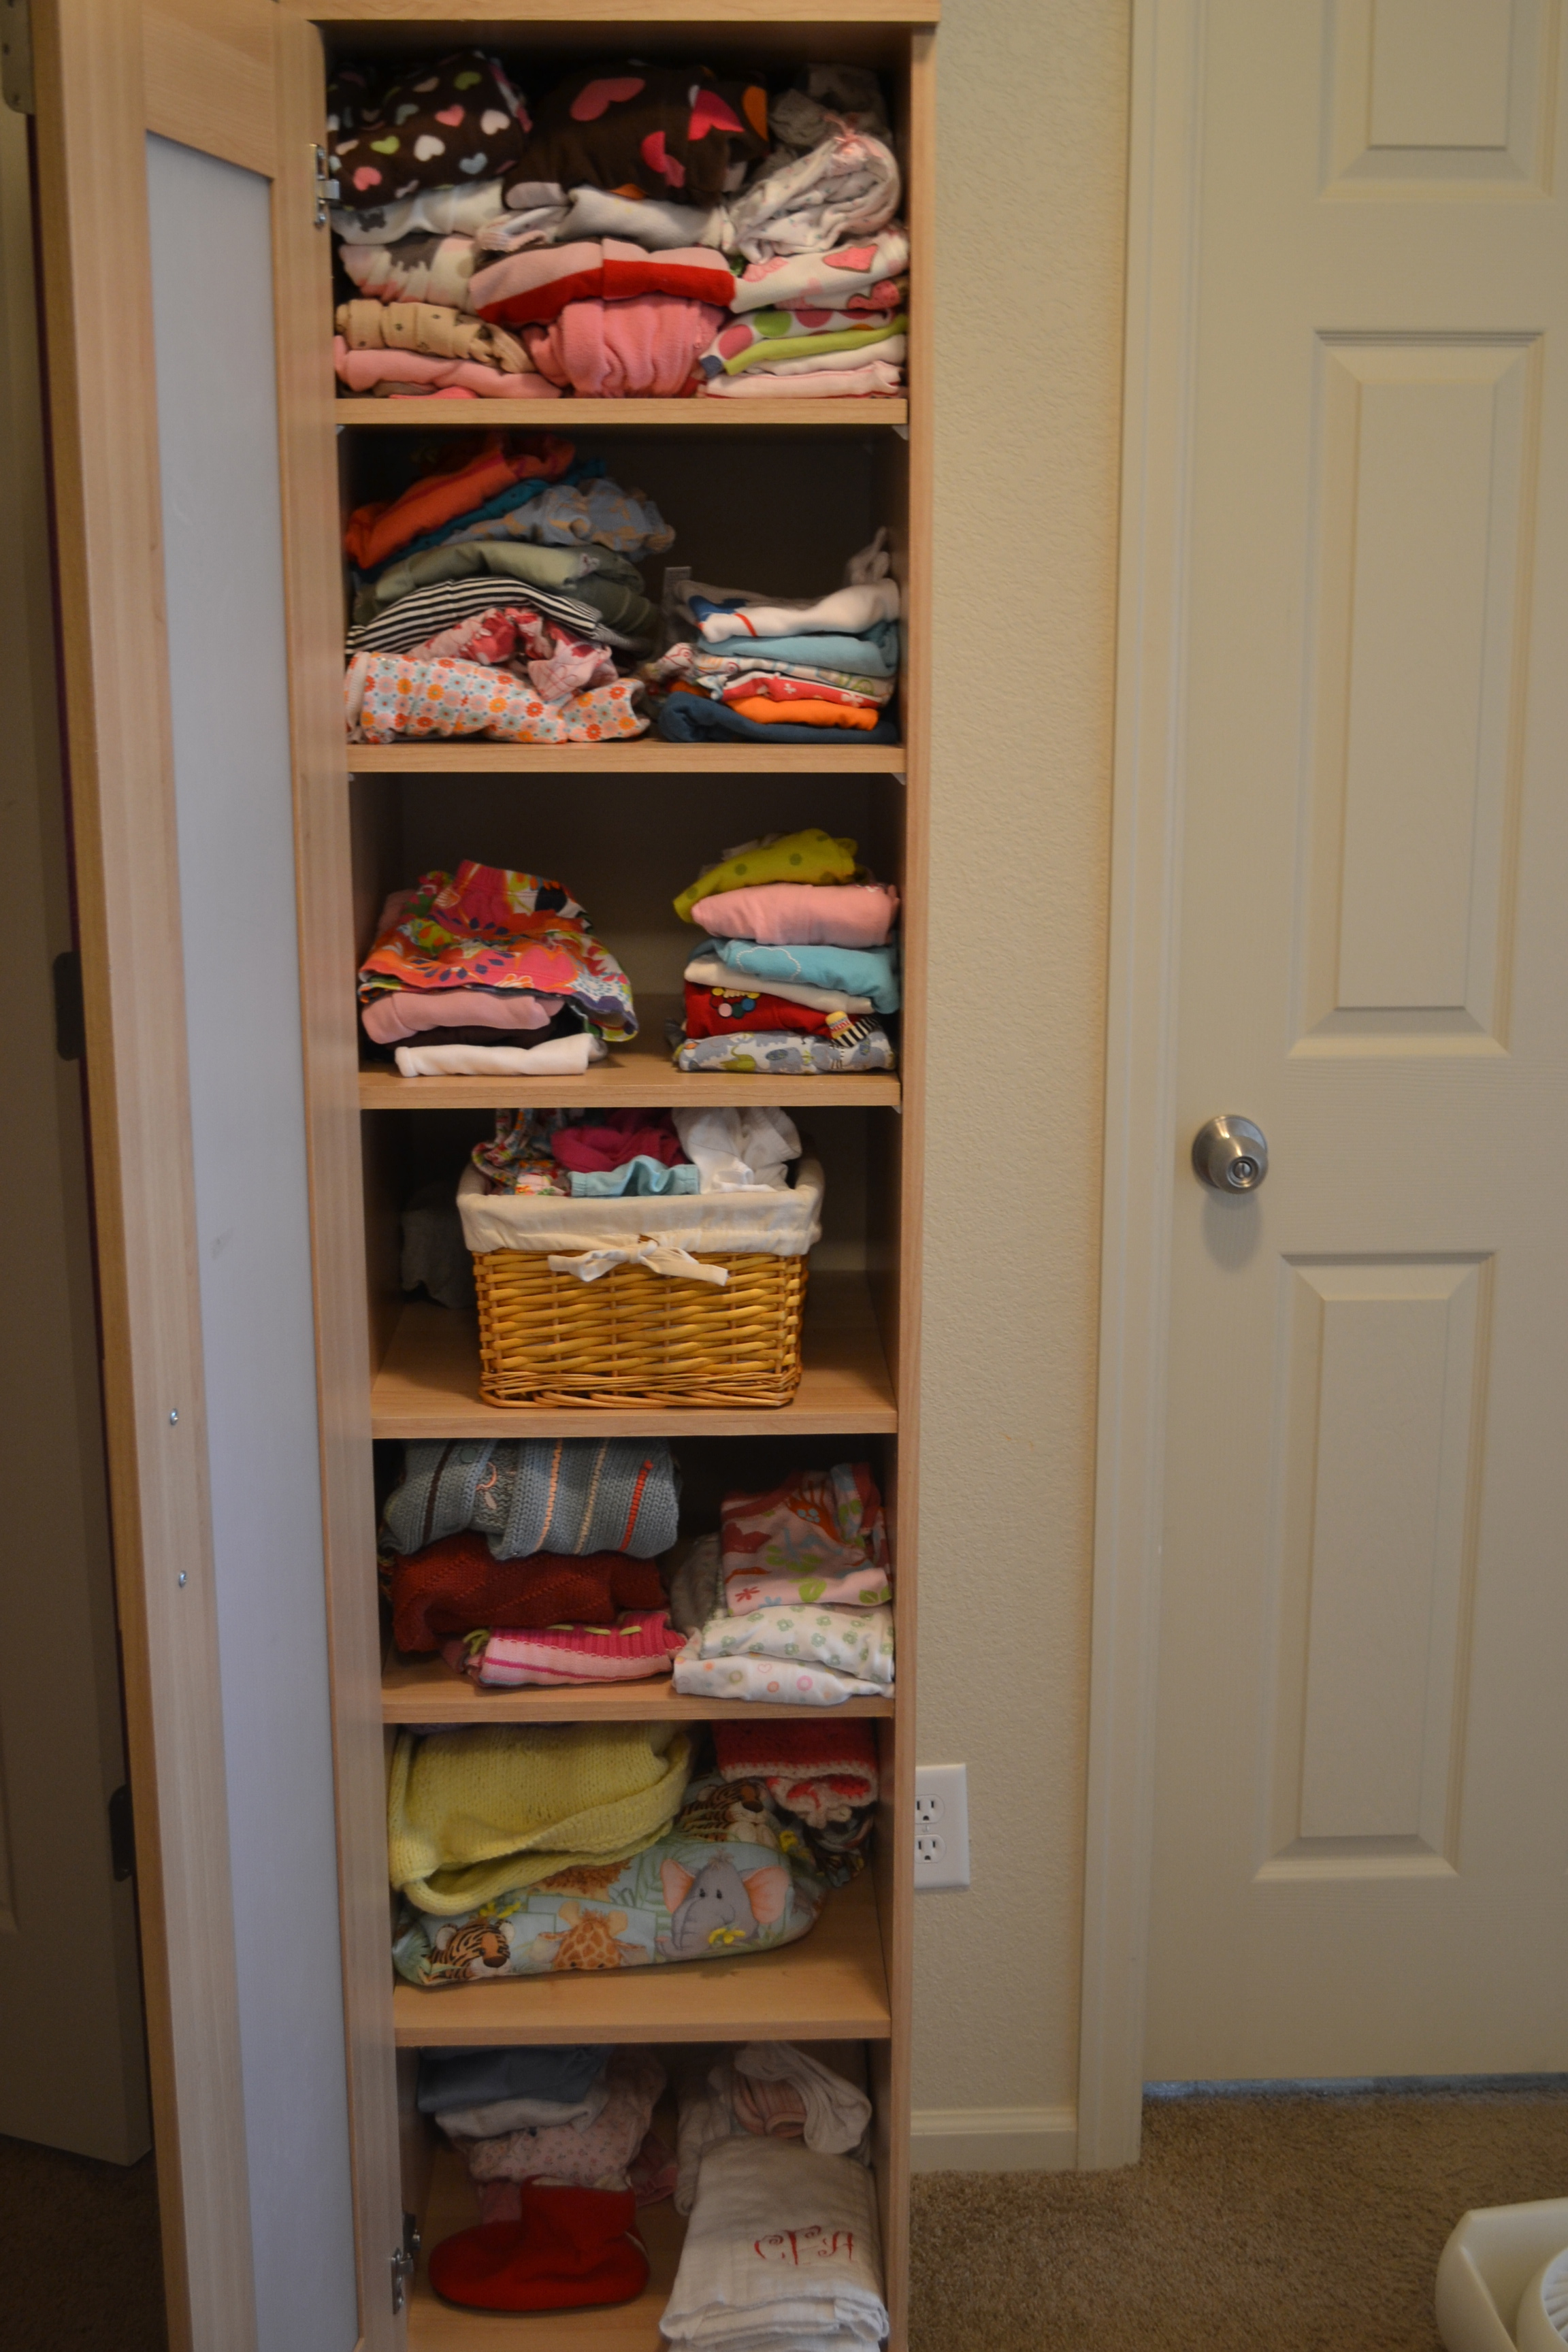 A wardrobe stocked with baby clothes